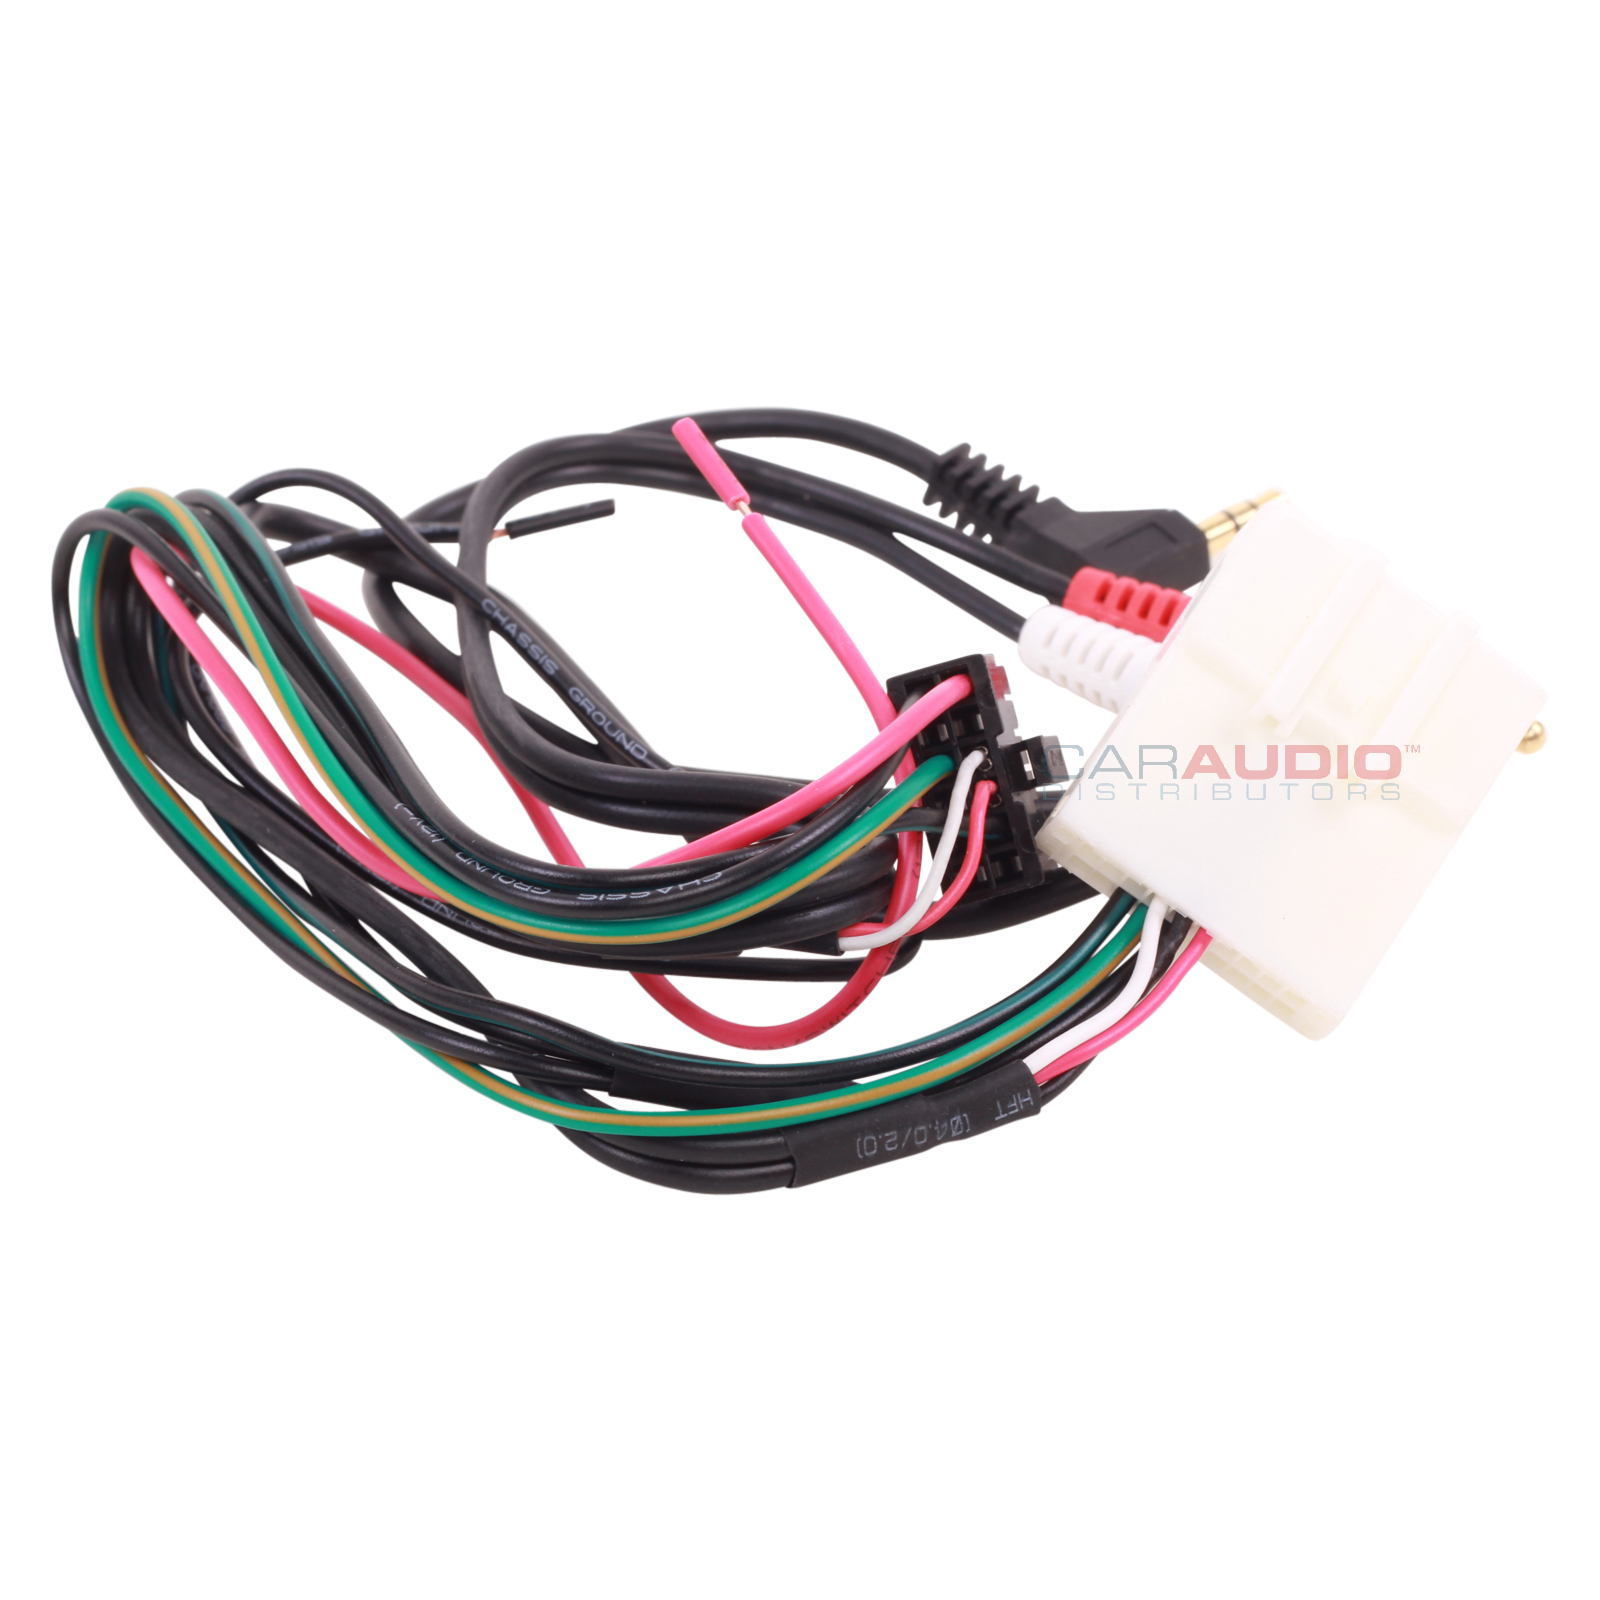 metra wiring harness toyota micro usb plug diagram new 70 8114 aftermarket swc add on